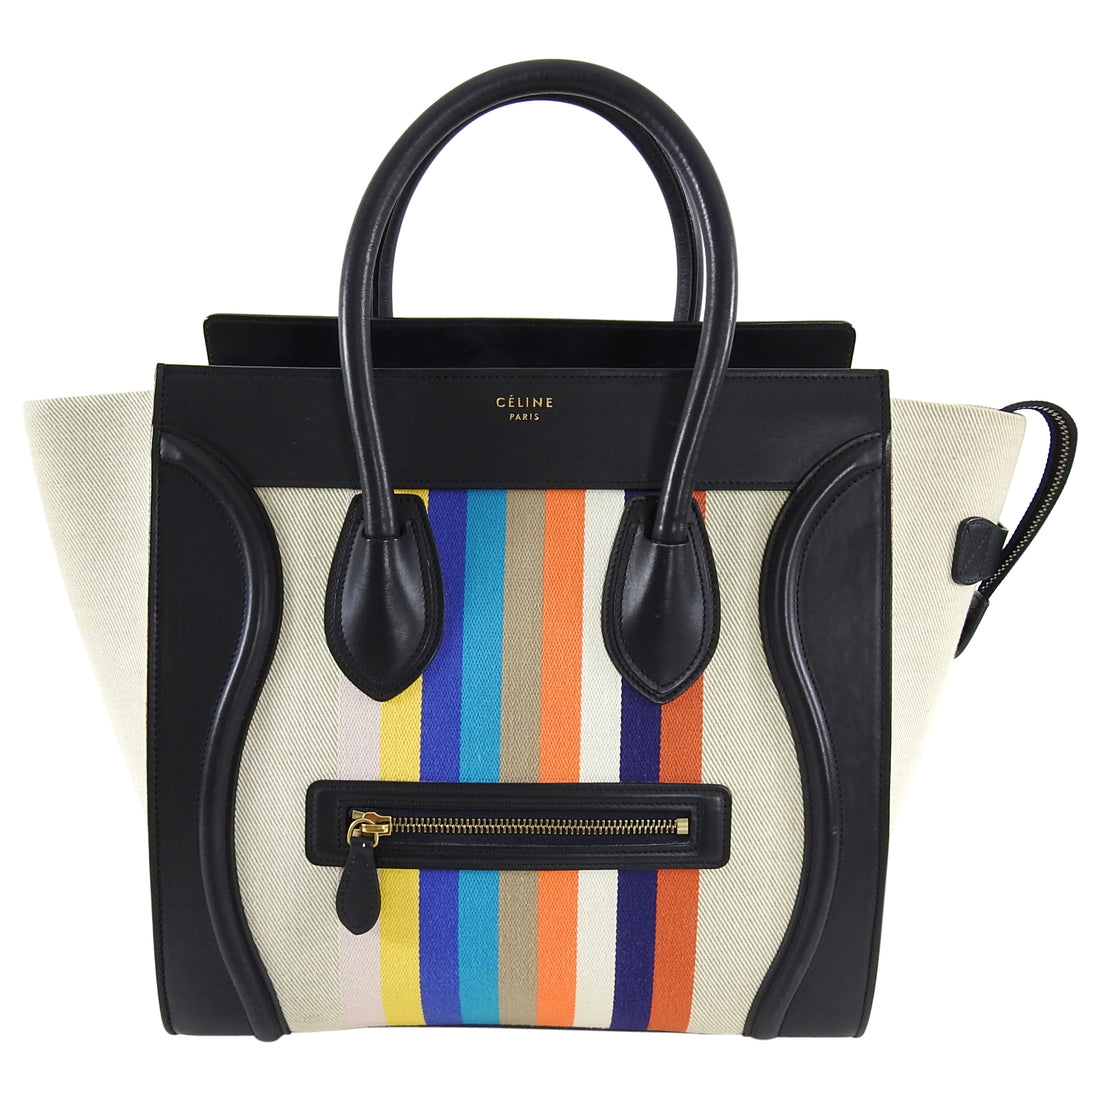 Celine Luggage Mini Tote Striped Canvas and Leather